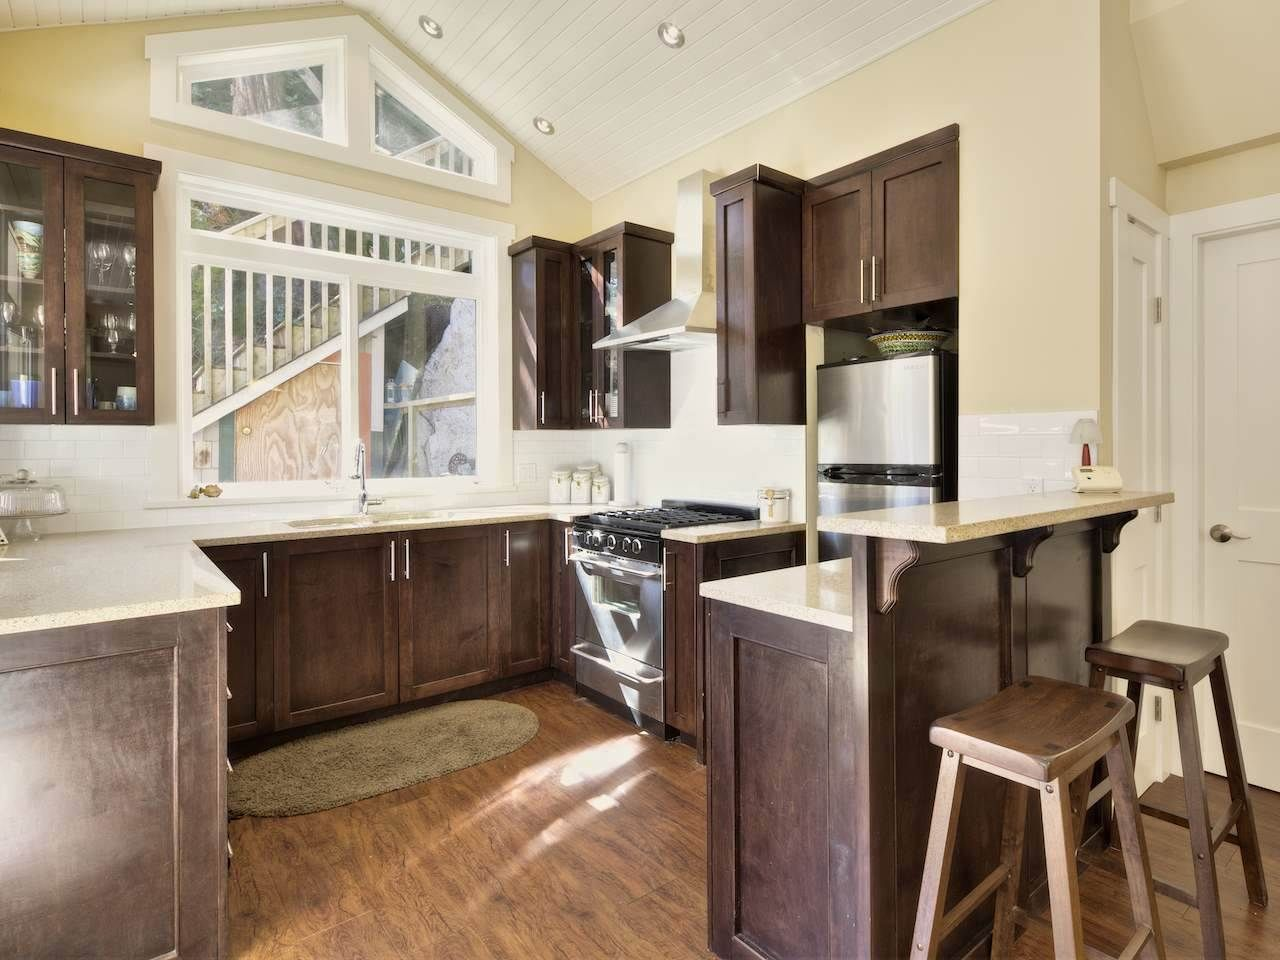 Main Photo: 824 INDIAN ARM in North Vancouver: Indian Arm House for sale : MLS®# R2500336